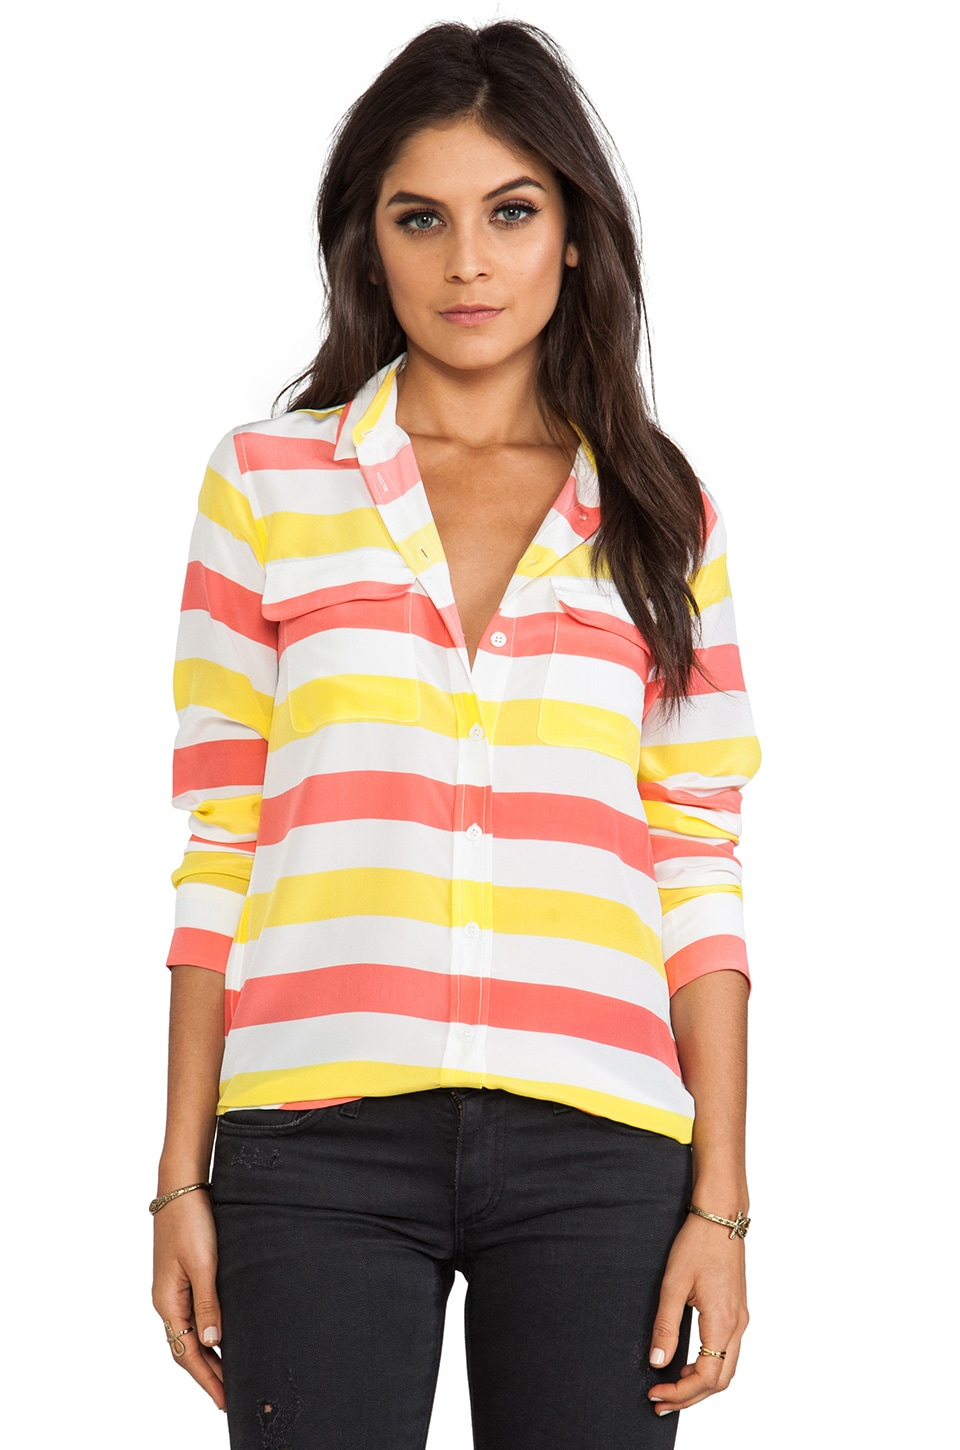 Equipment Cabana Stripe Slim Signature Blouse in Blazing Yellow/Coral